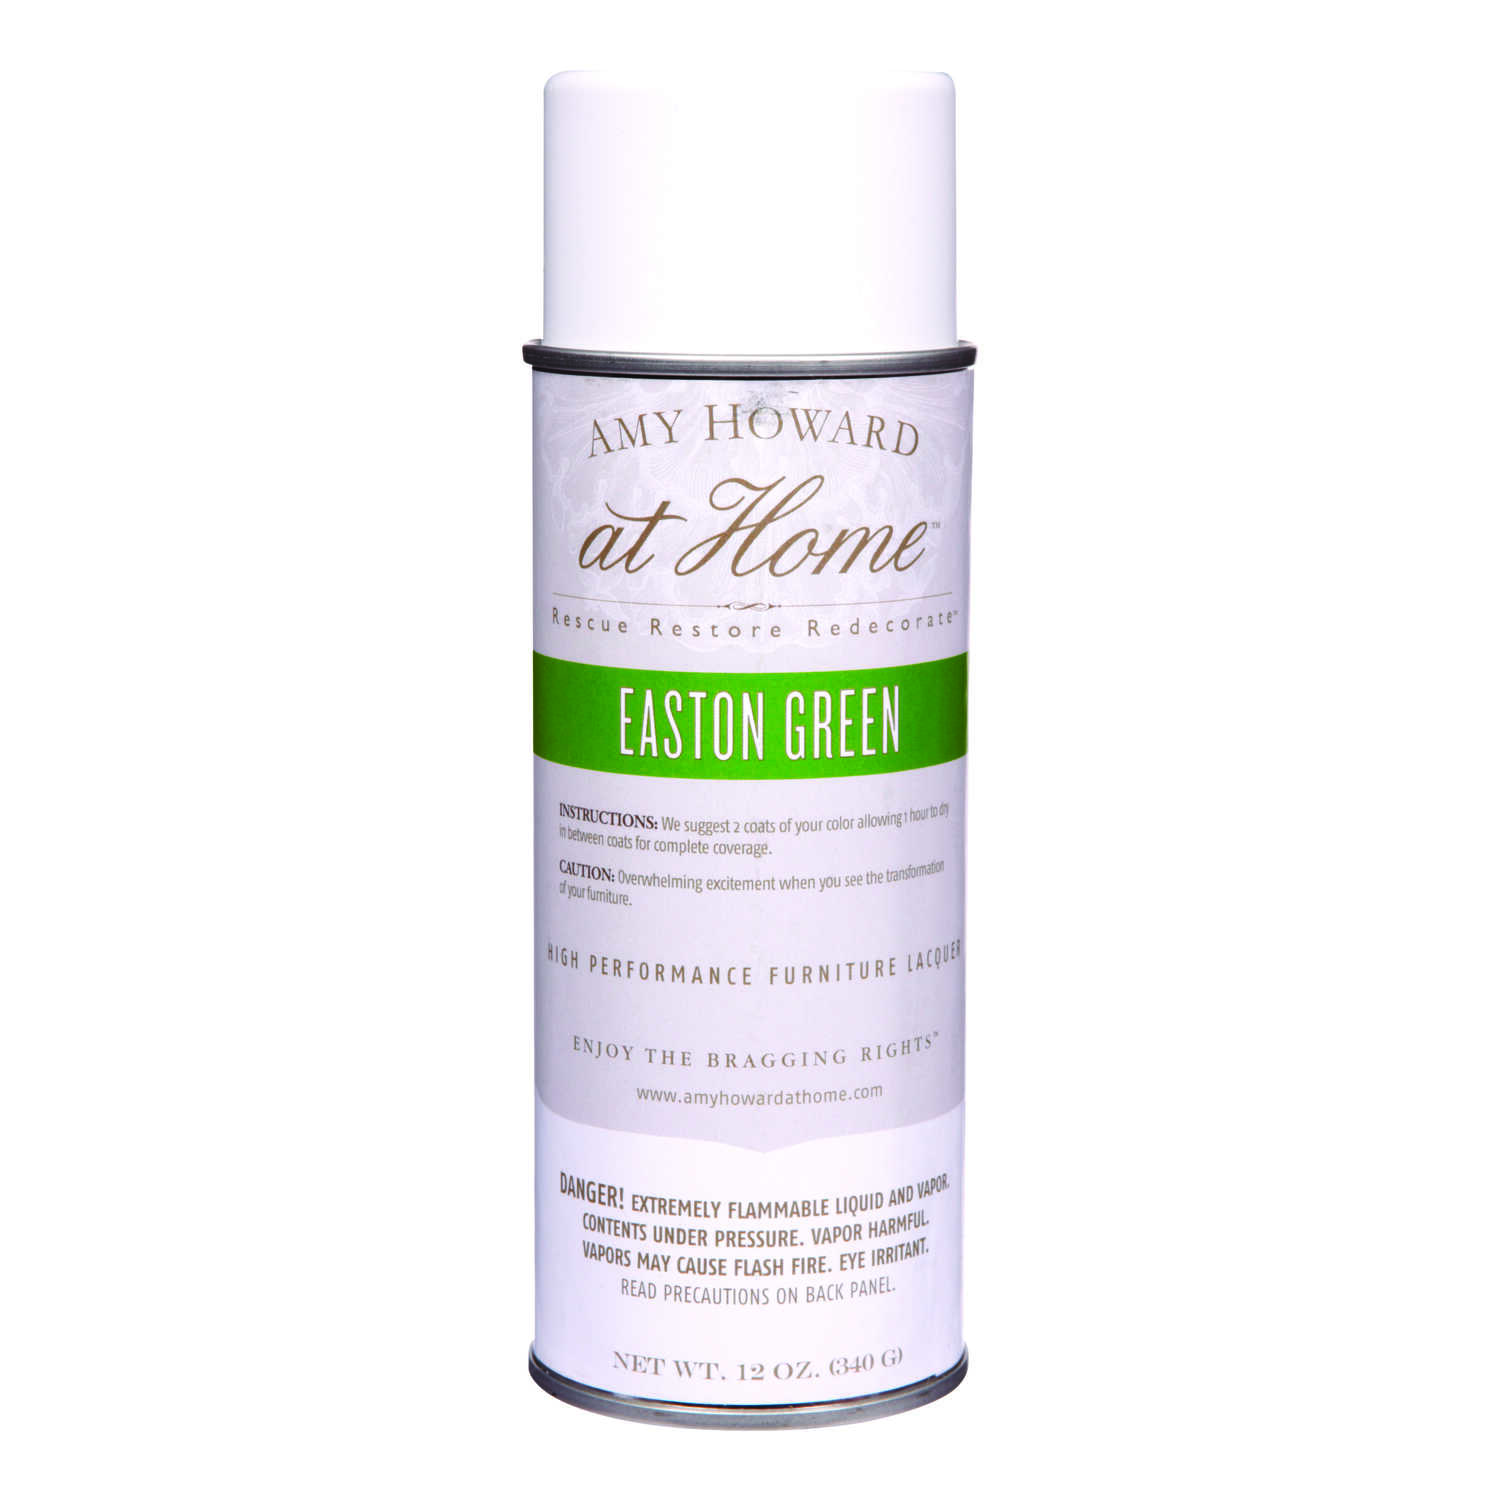 Amy Howard at Home  Gloss  Easton Green  High Performance Furniture Lacquer Spray  12 oz.